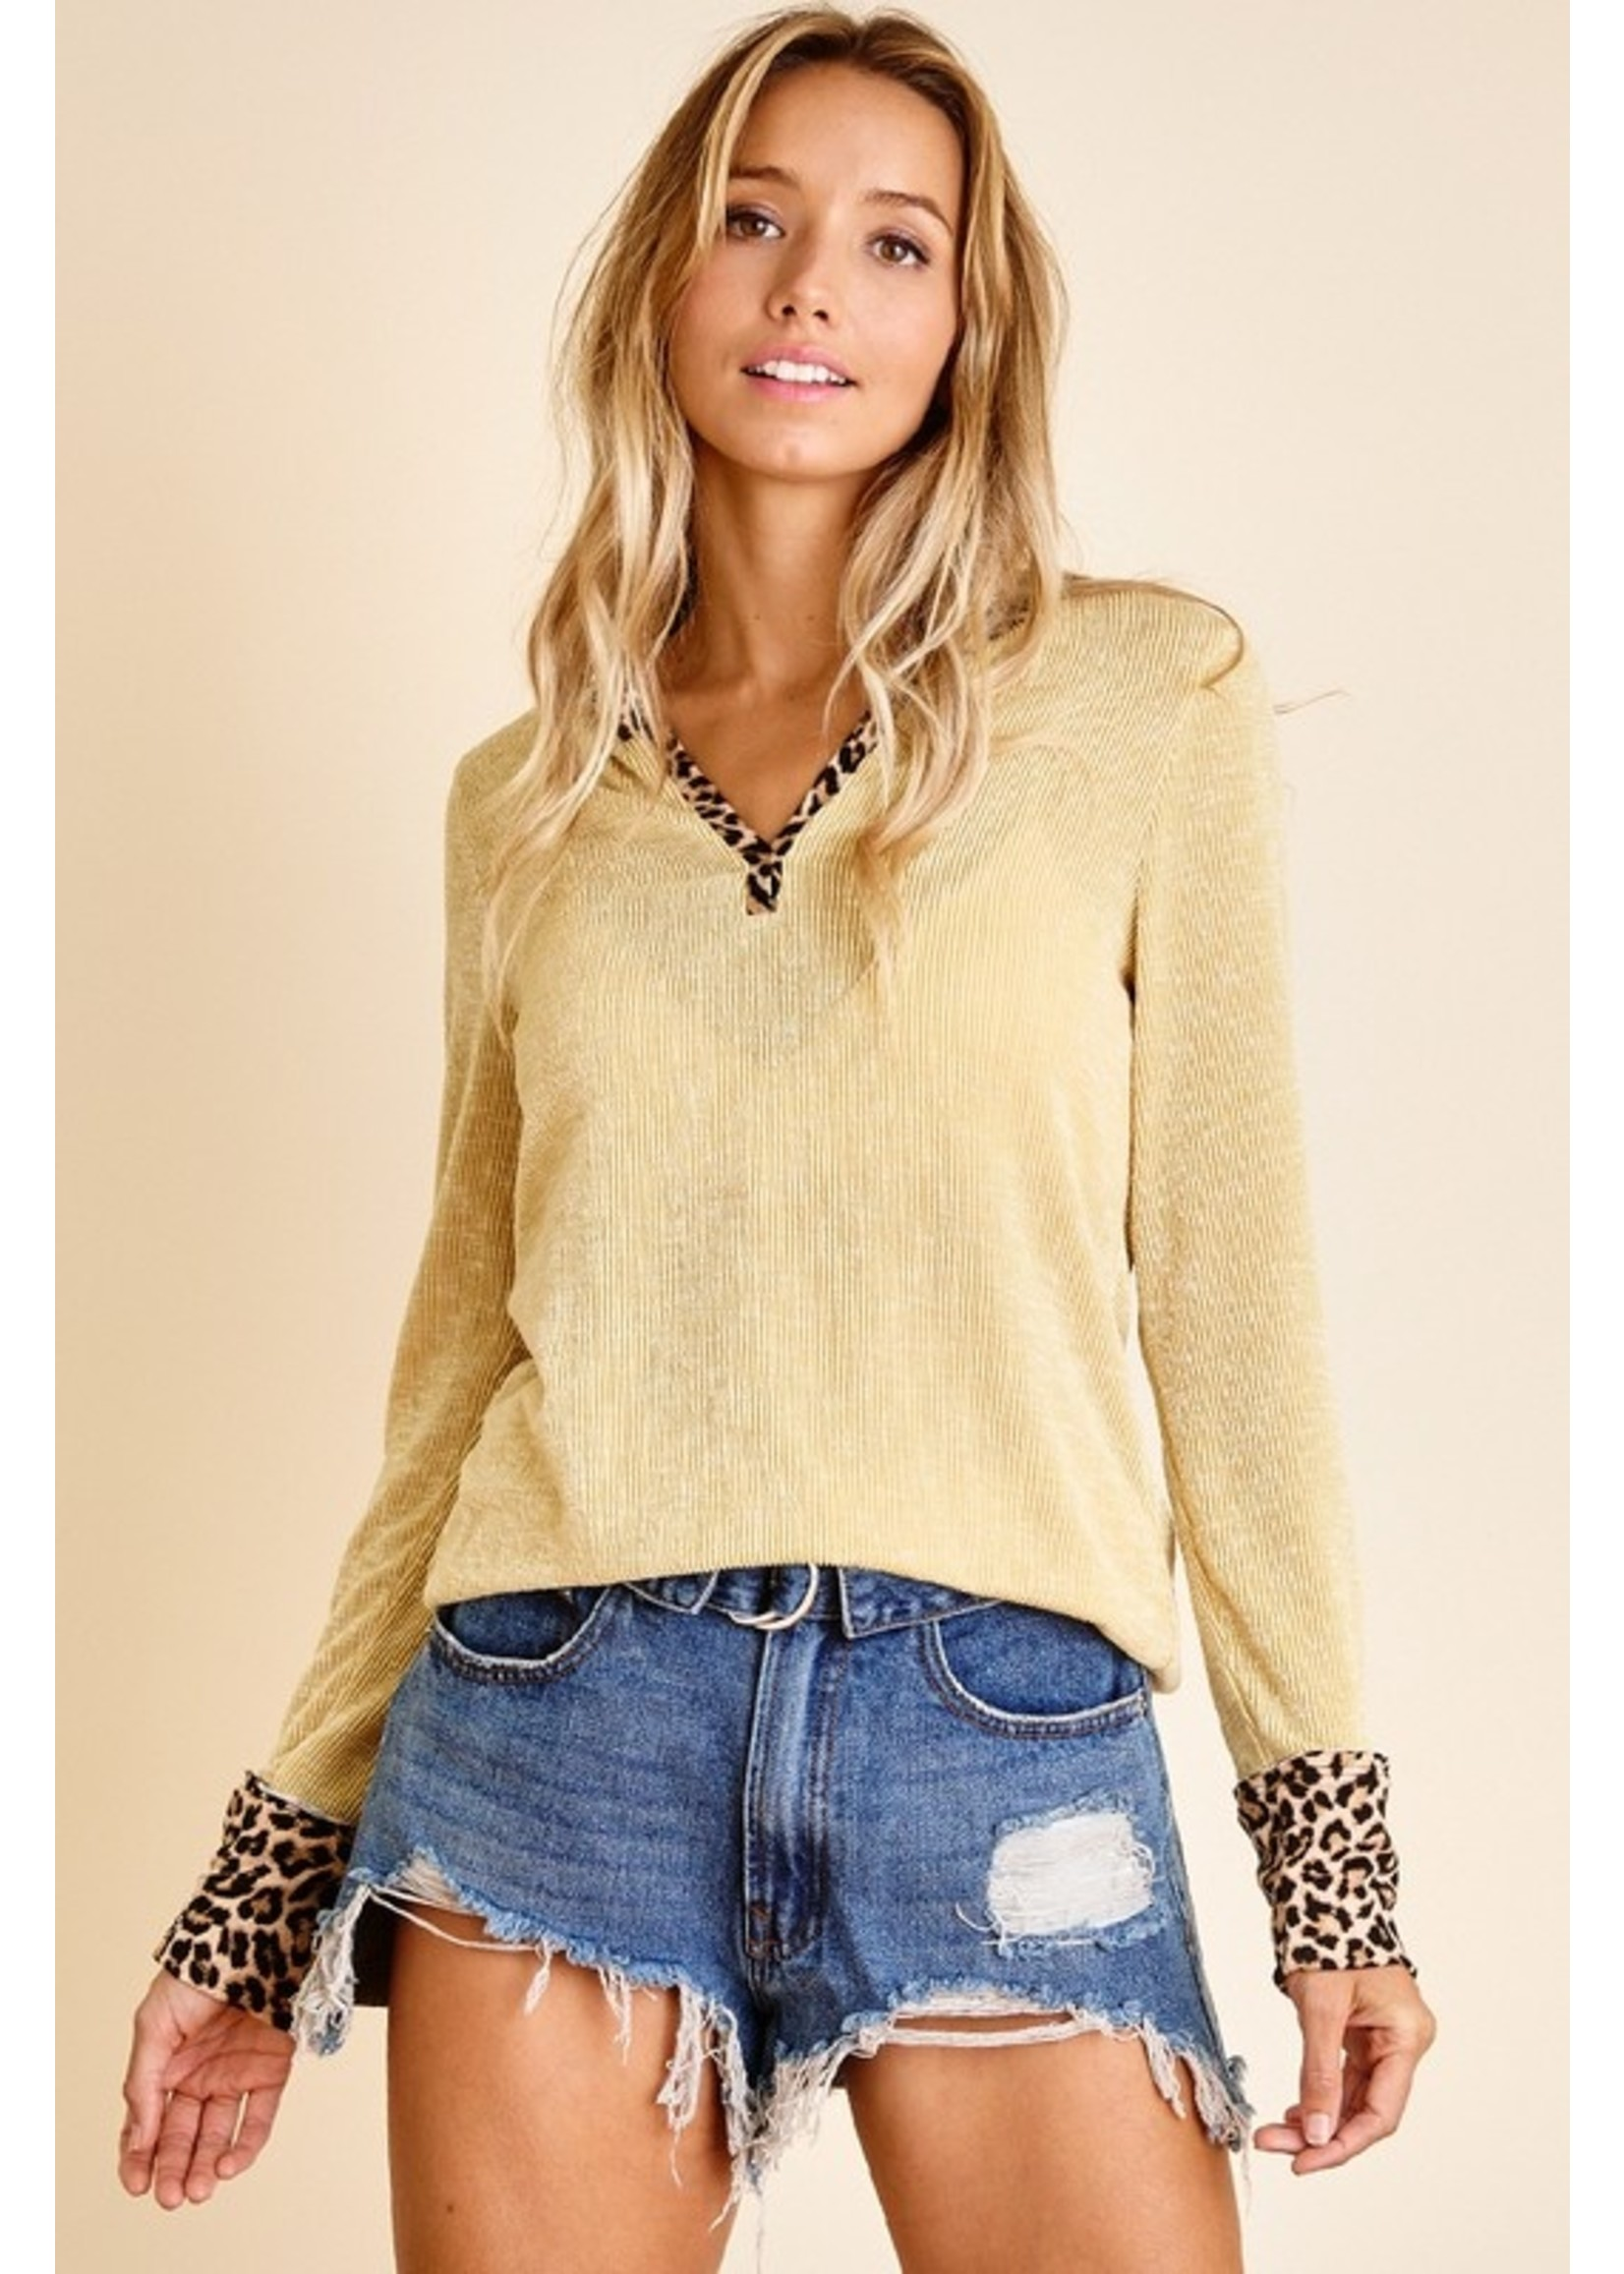 Ces Femme Solid Camouflage Contrast Textured Top